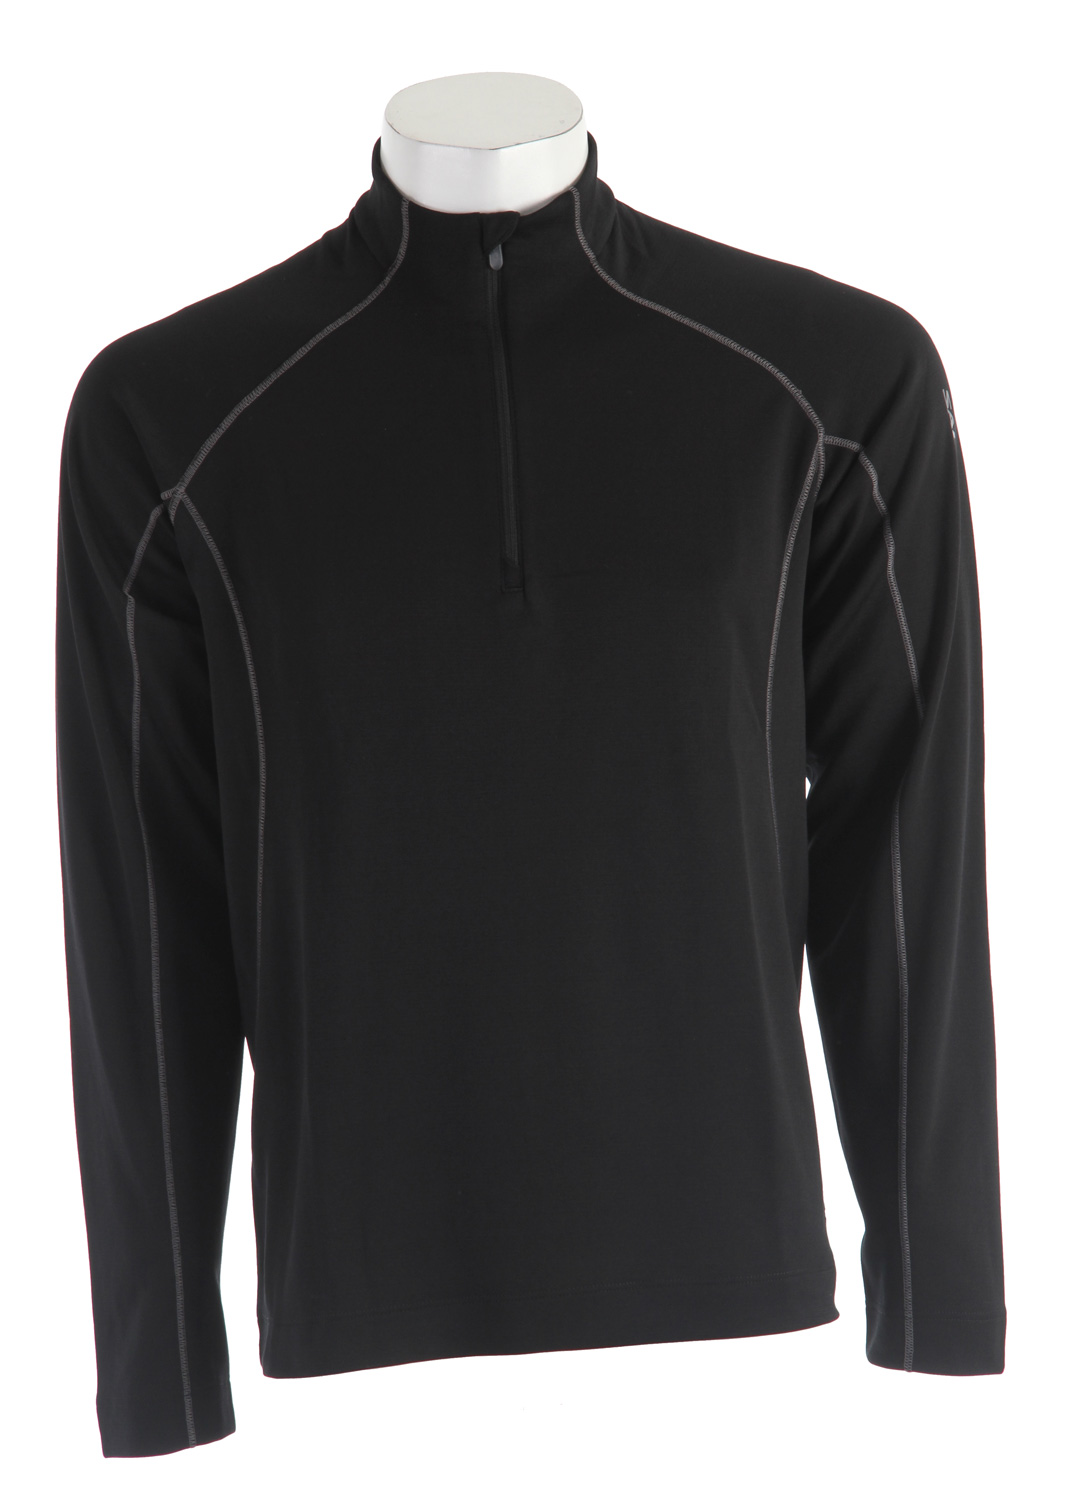 "Camp and Hike Next to skin layer that is wicking and quick drying, provides warmth for colder active sports.Key Features of the Salomon Superfleet Hz Midlayer Base Layer Top:  Smart Skin  ActiLITE Wool Poly  1/2 zip with stay down puller  Raglan sleeves  Flatlock seams  Body: PES 73%, WO 20%, PA 7%  Fit: Active  Center Back: 30.3"" - $54.95"